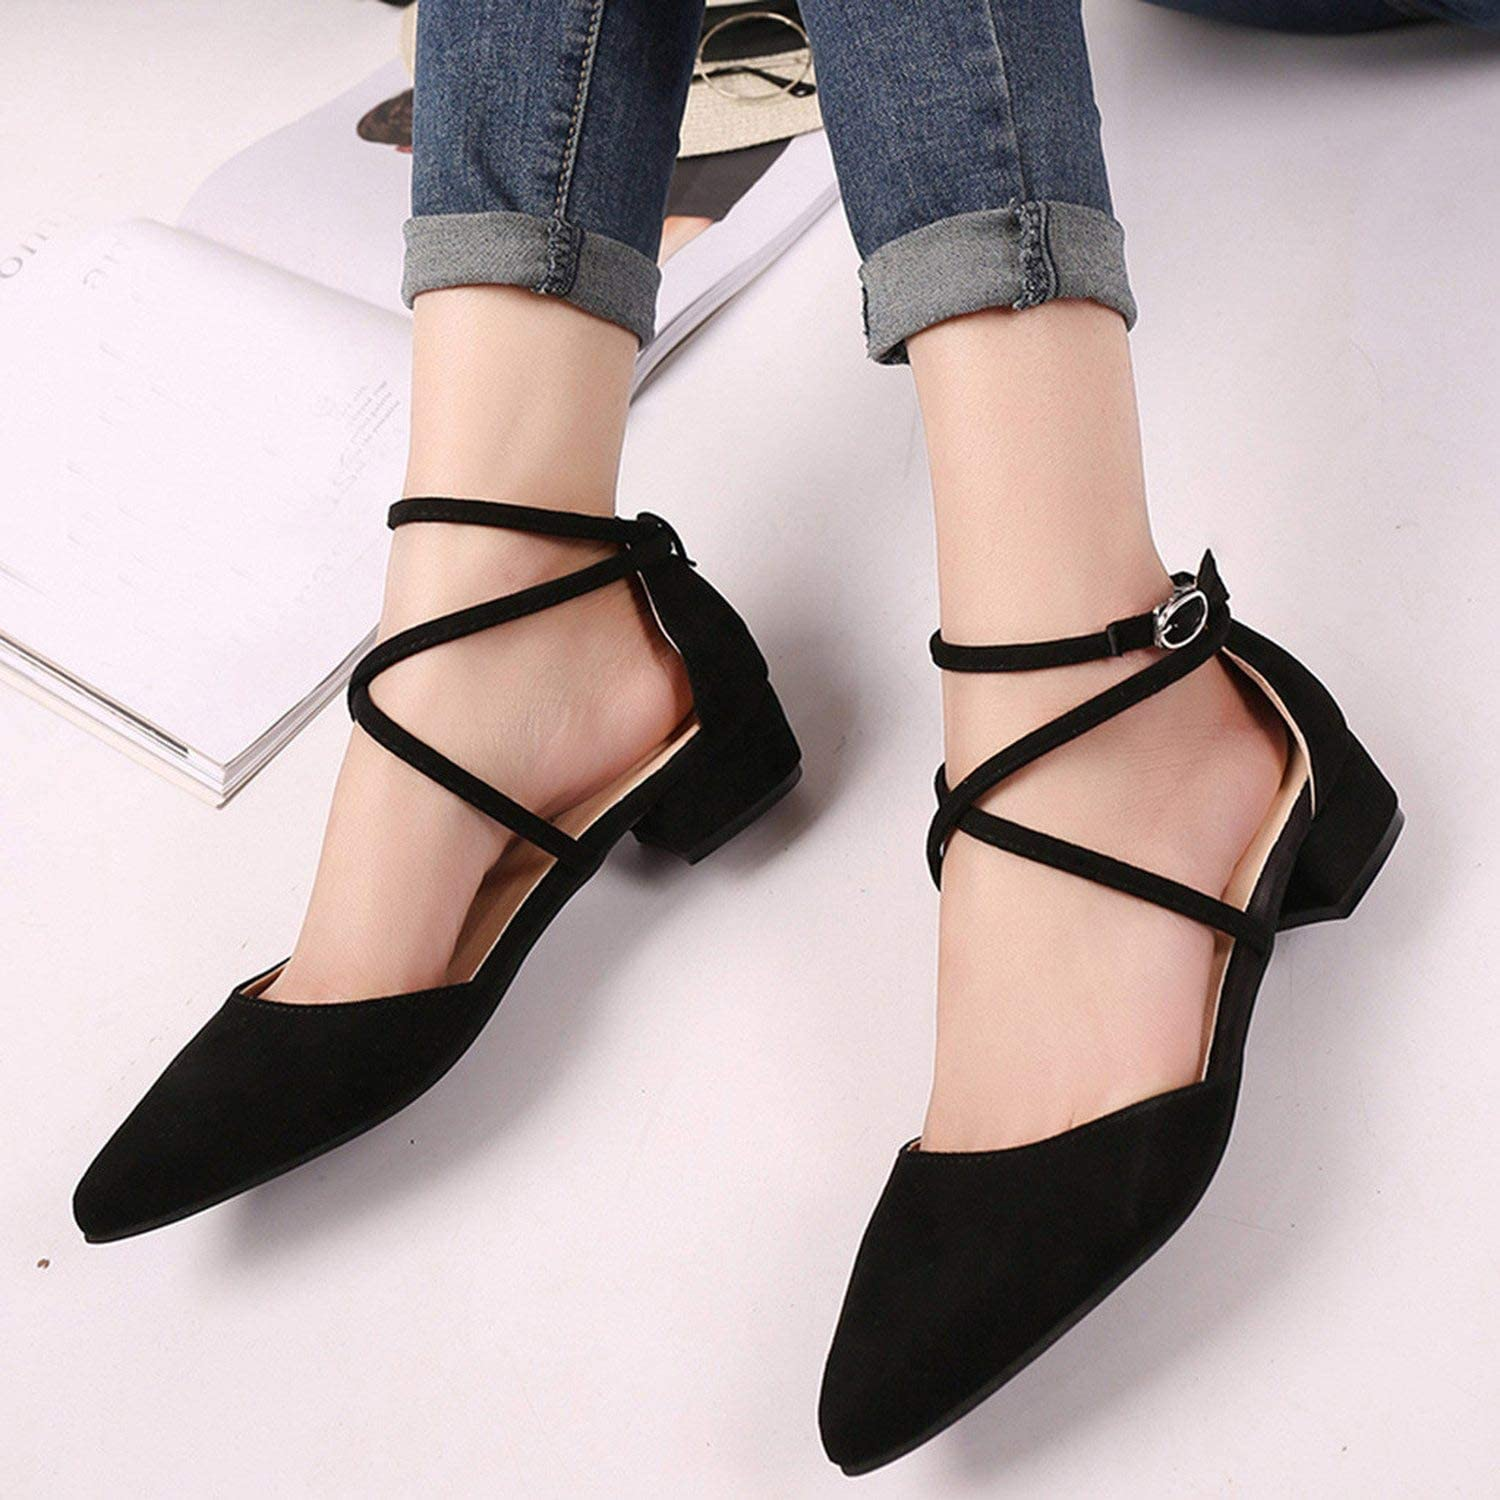 2019 Womens Fashion Casual Point Toe Buckle Strap Square Heel Sandals Med Heel Tops Shoes,Black,35